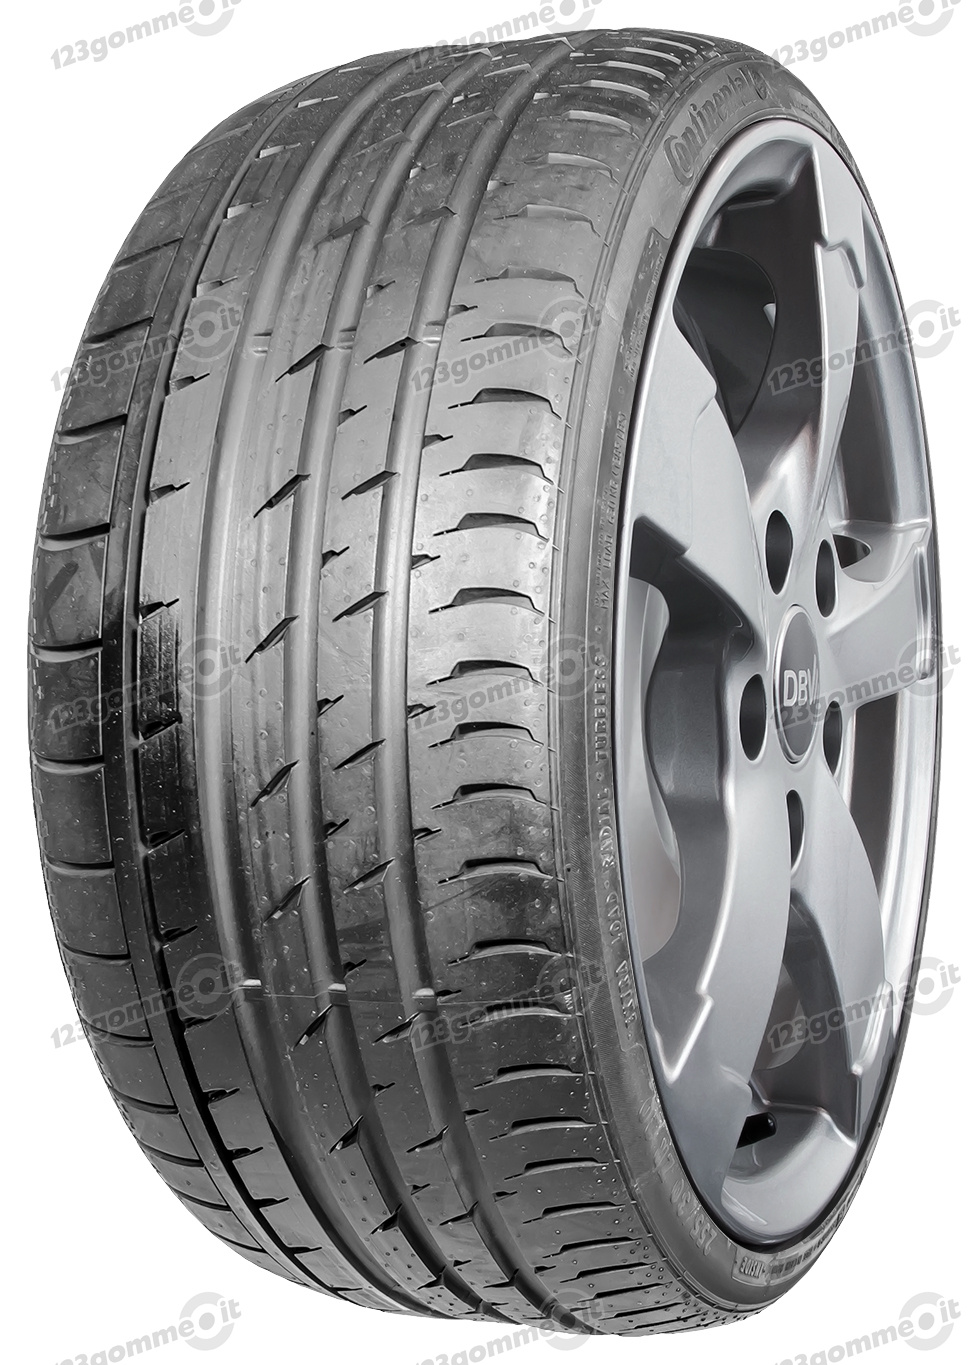 275/35 R18 95Y SportContact 3 MO FR  SportContact 3 MO FR